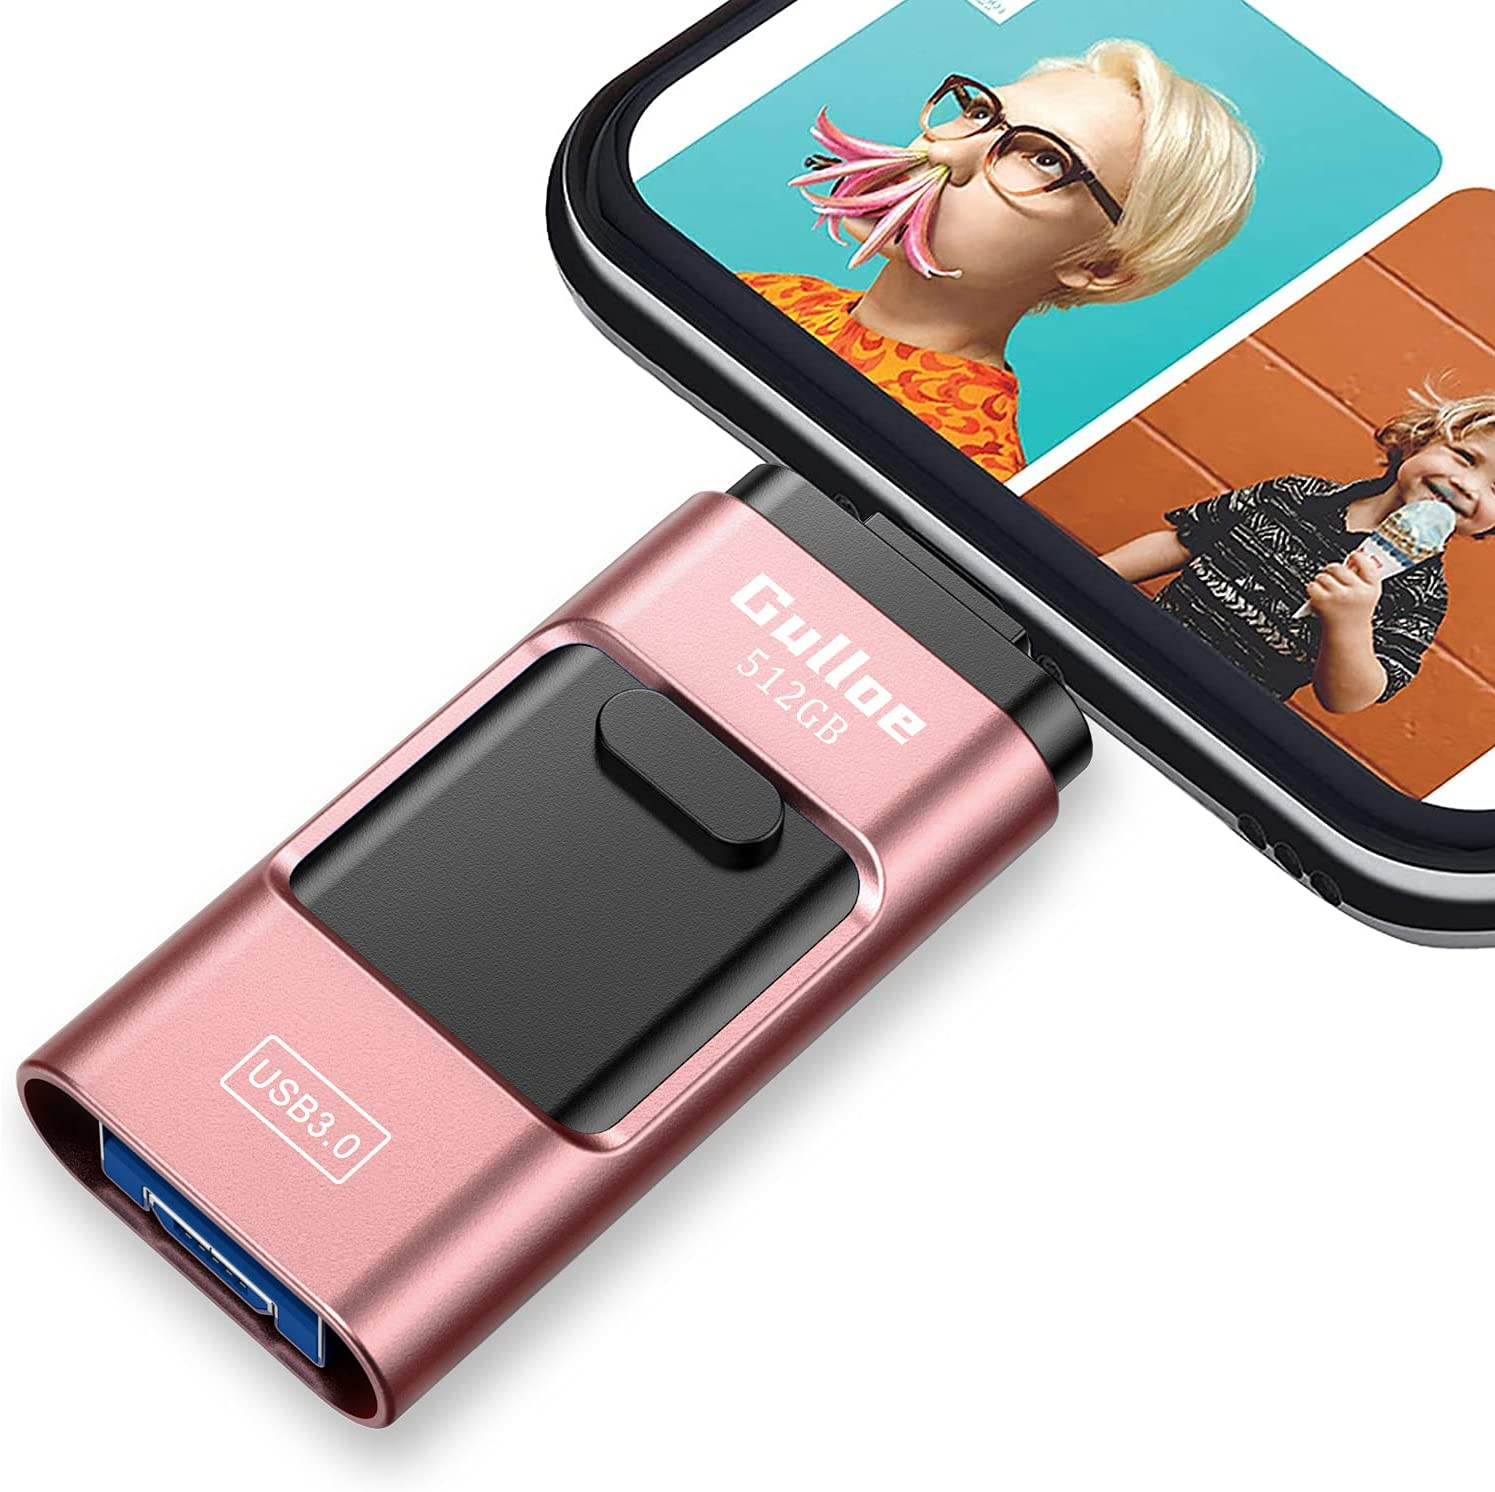 Gulloe USB3.0 iPhone Flash Drive 512GB, iPhone USB Memory Stick External Storage Thumb Drive Photo Stick Compatible with iPhone, Android, Computer and More Devices (Rose Gold)